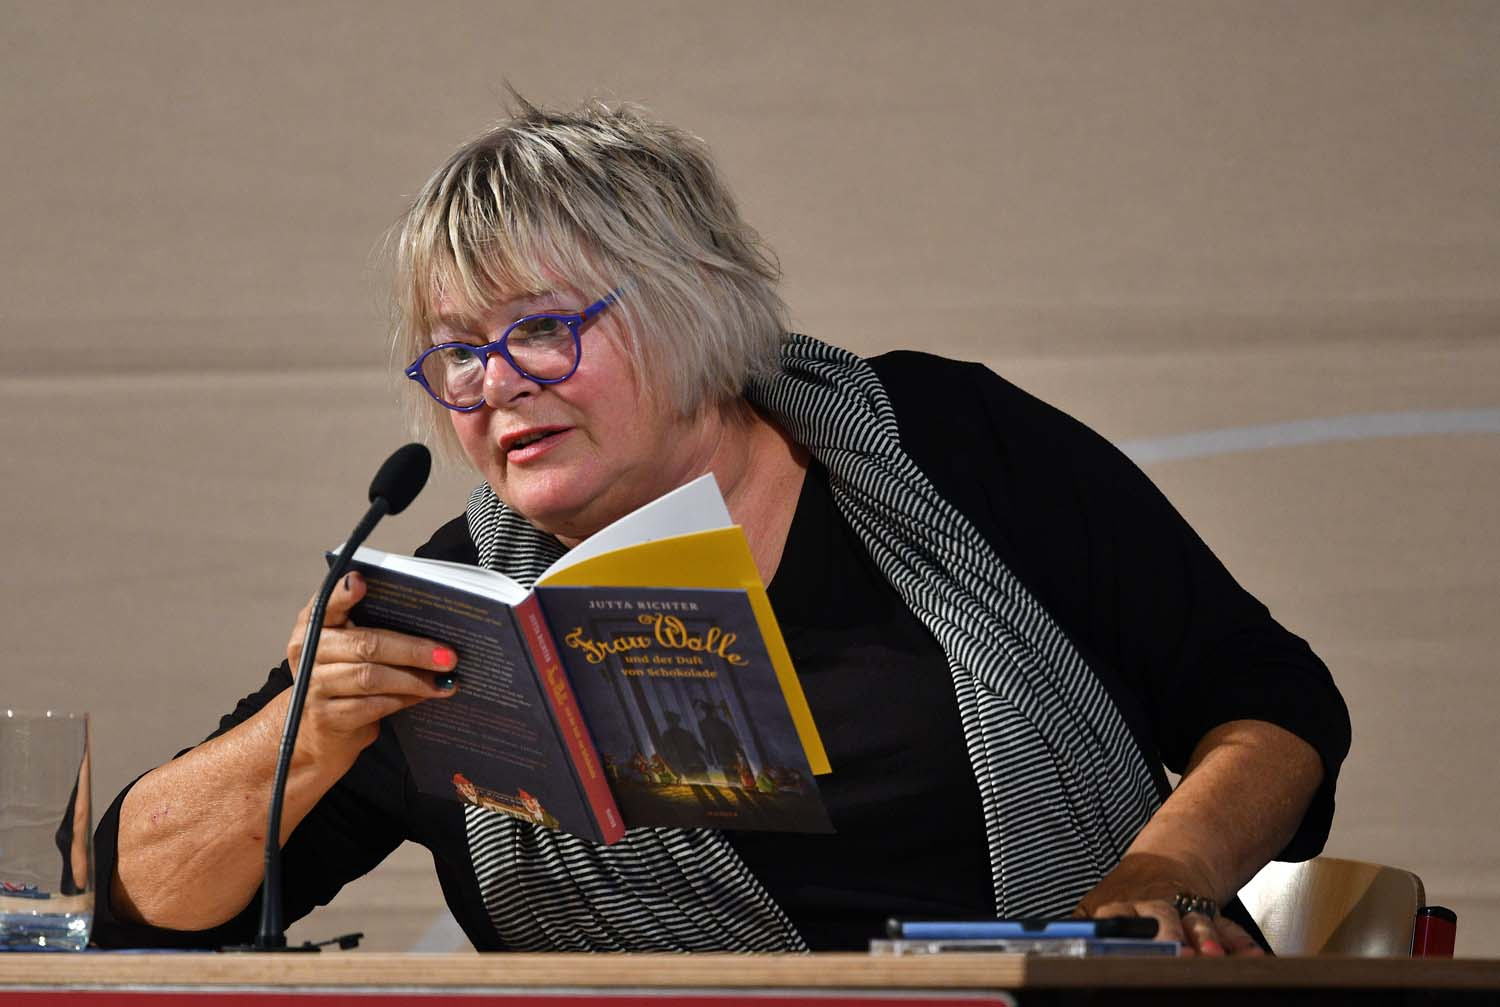 Jutta Richter am 21. September 2018 in Prüm